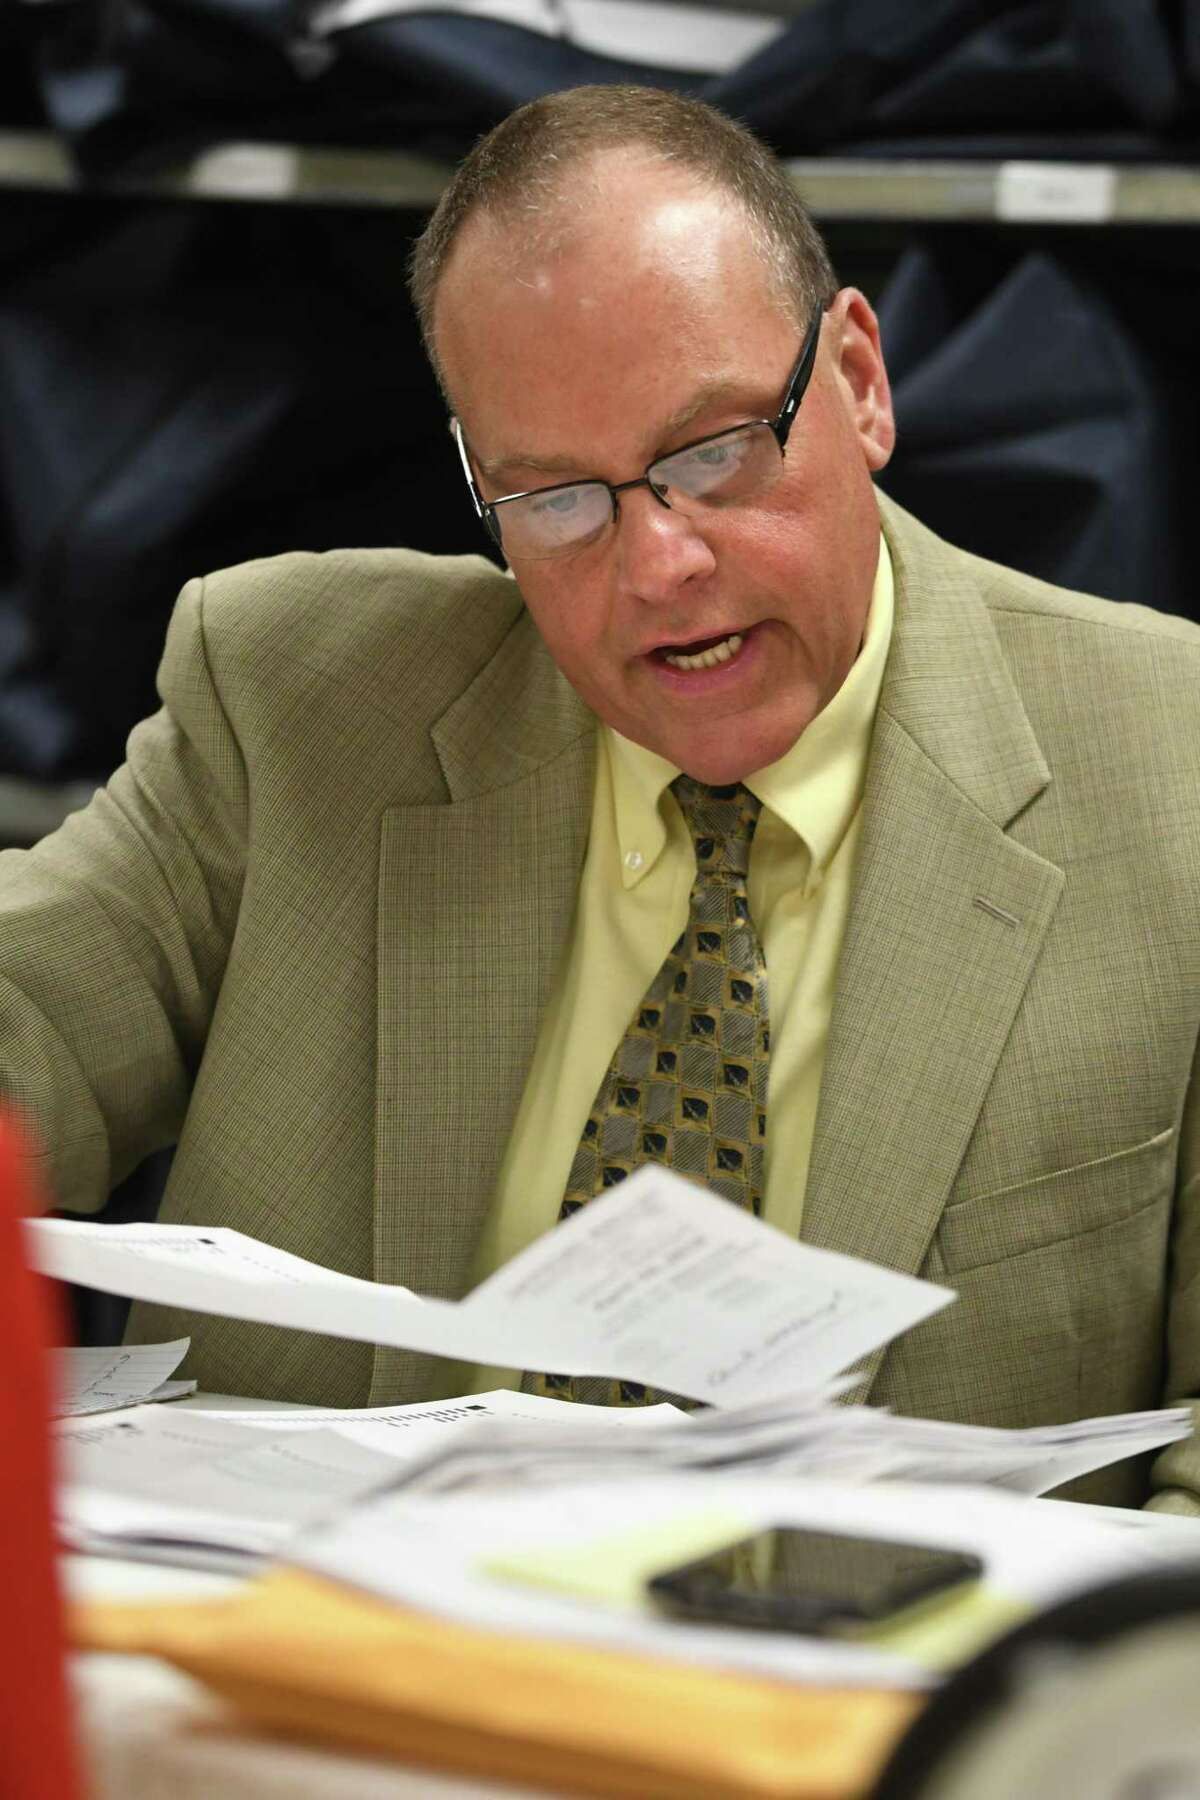 Democratic elections commissioner Edward McDonough reads out loud absentee ballots for the election of Rensselaer County for the 107th Assembly District at the Rensselaer County Board-Elections office on Friday, April 27, 2018 in Troy, N.Y. (Lori Van Buren/Times Union)